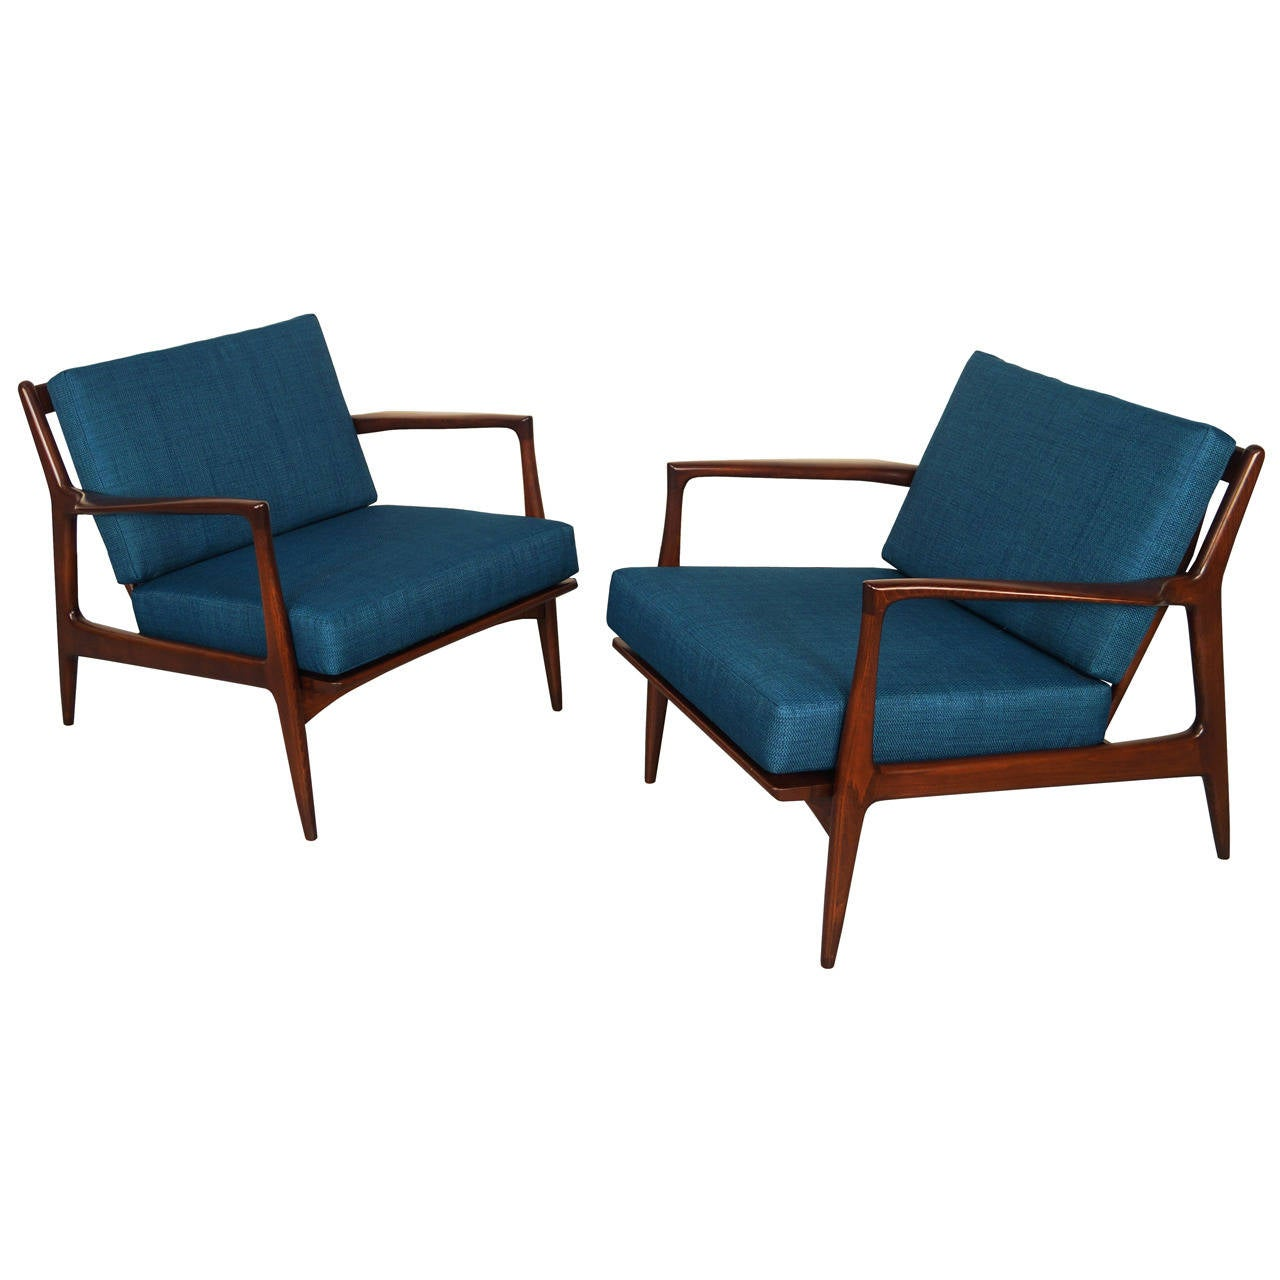 This sculptural pair of lounge chairs by ib kofod larsen is no longer - Danish Modern Lounge Chairs By Ib Kofod Larsen 1